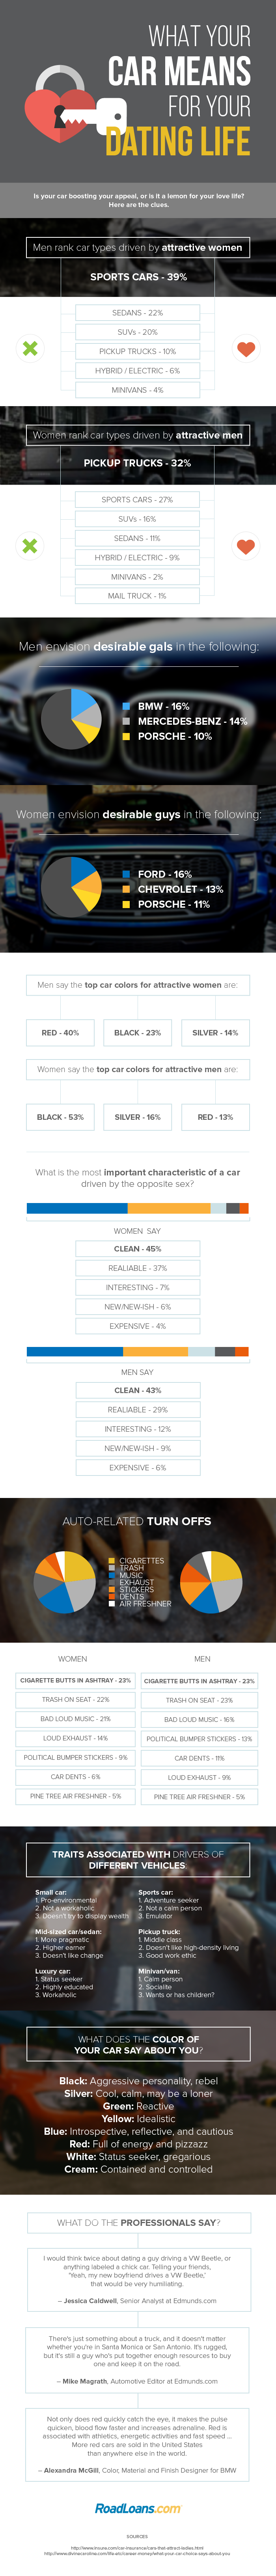 What your car means for your dating life infographic